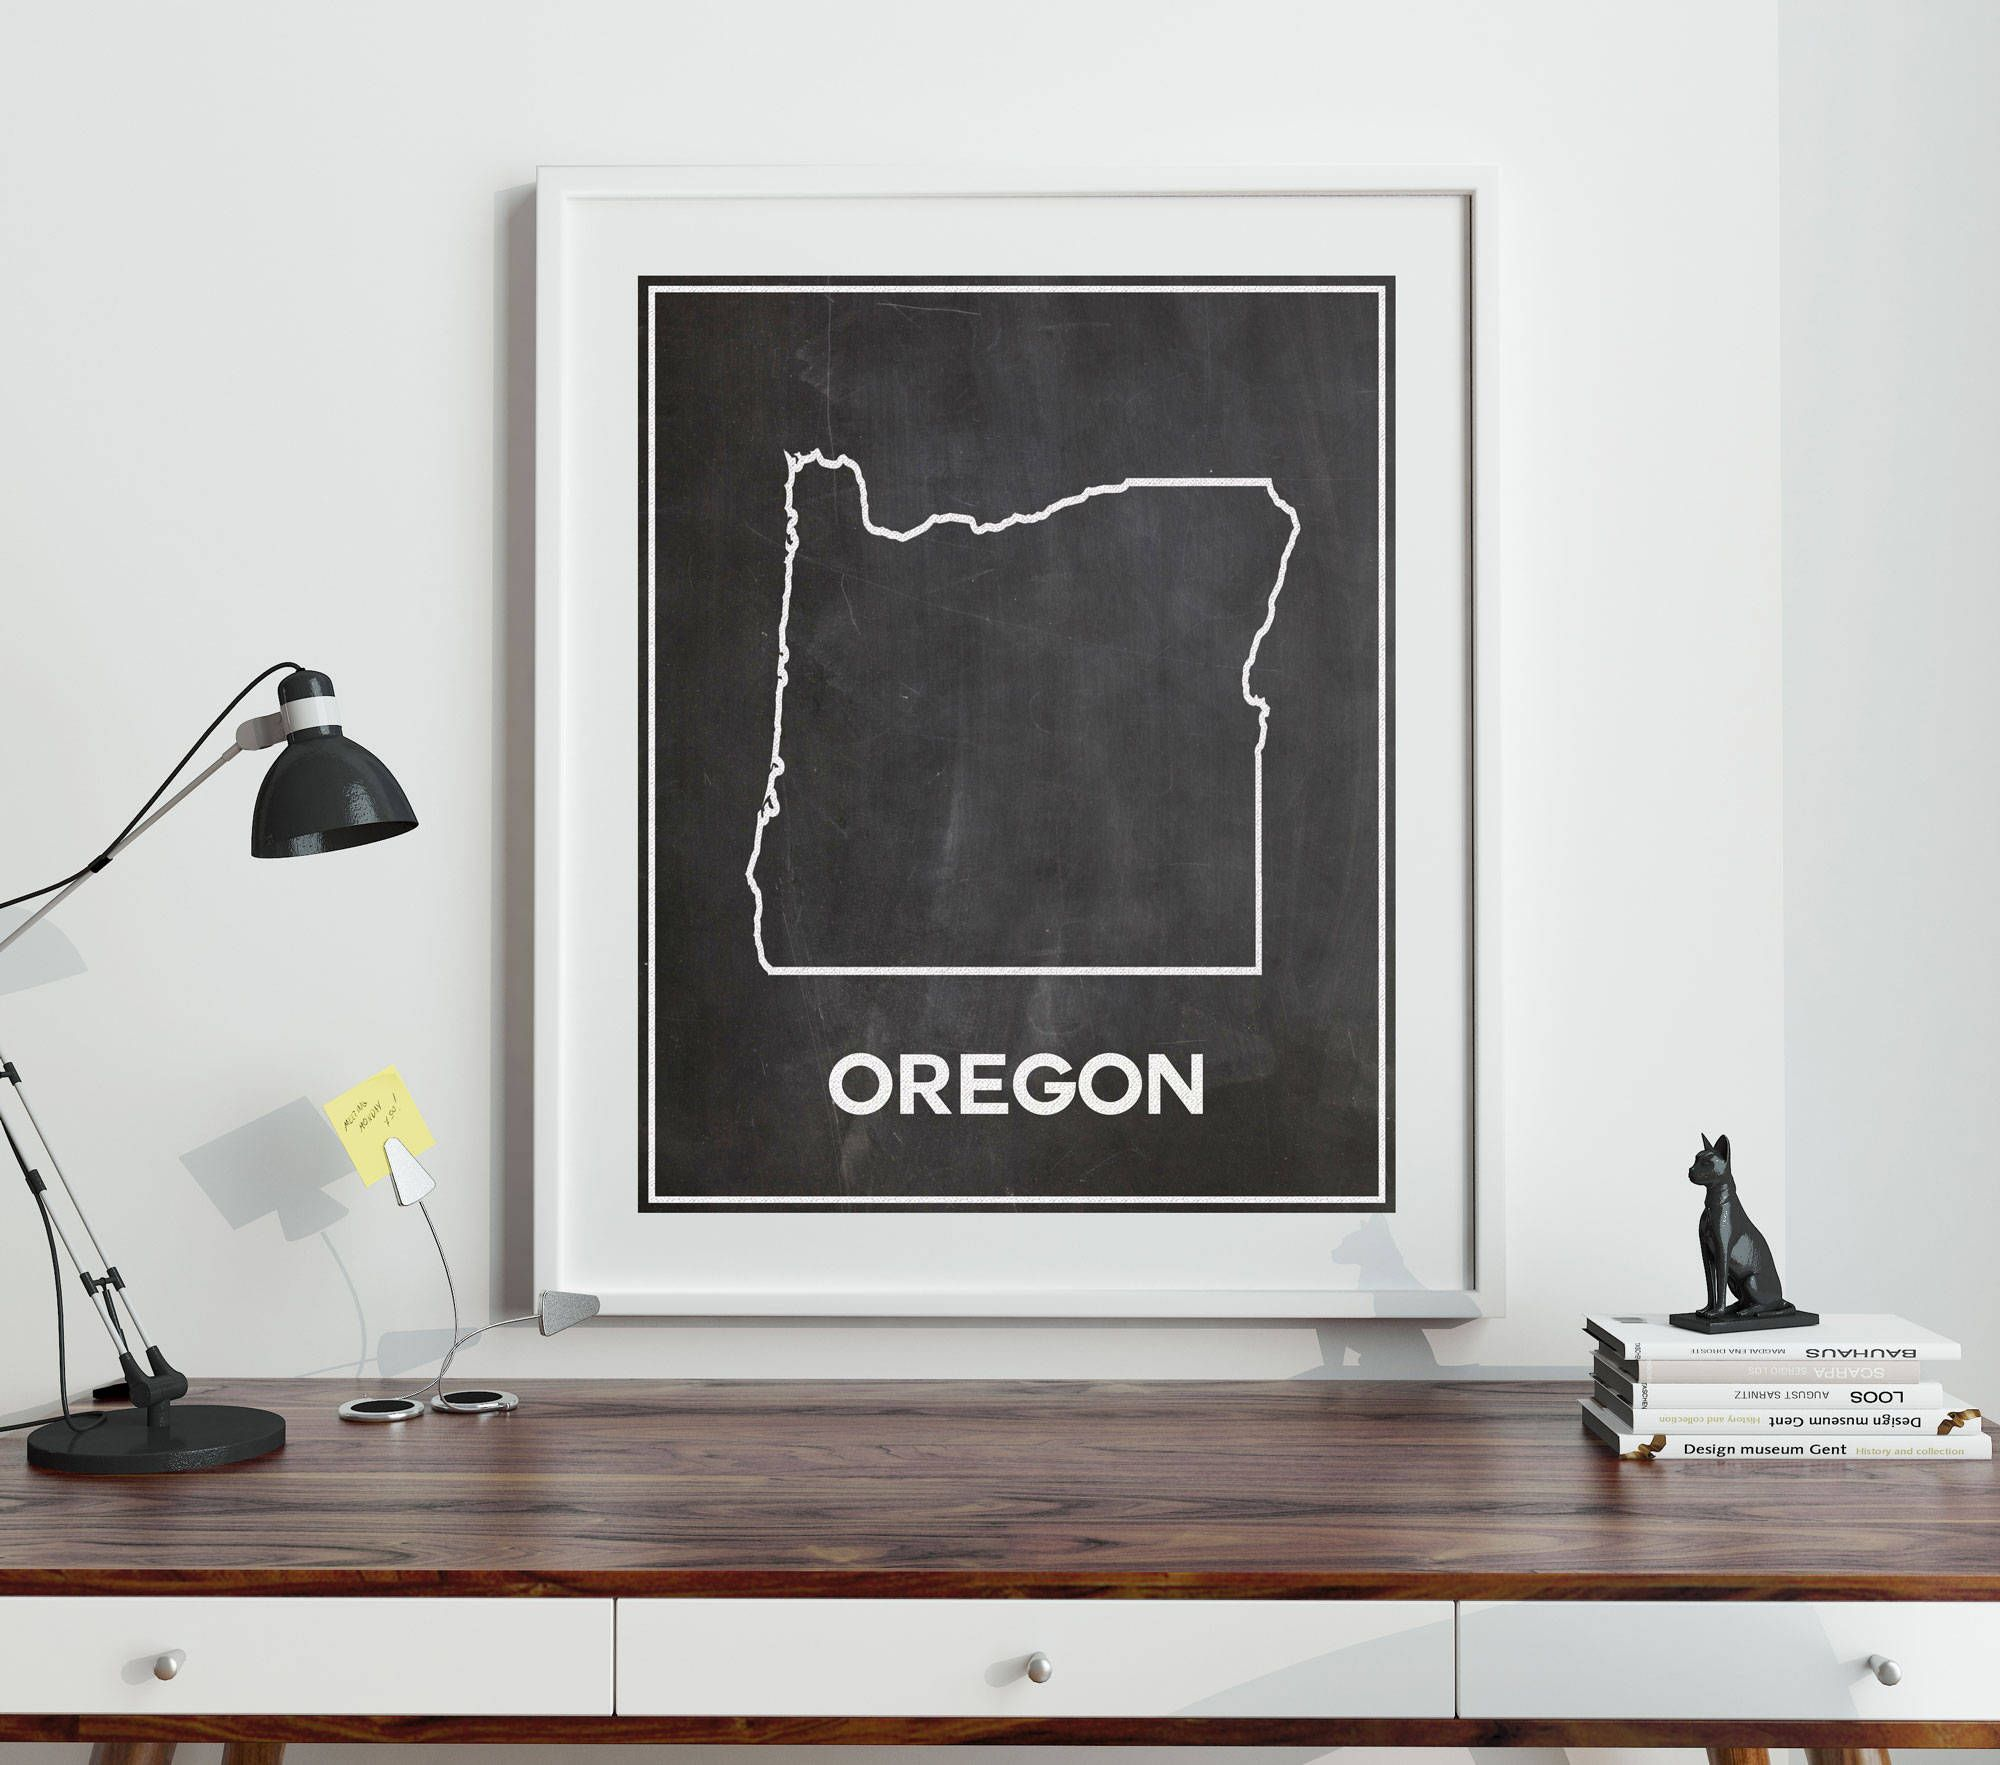 Map Of Oregon Breweries%0A Map of Oregon Poster Outline Oregon Map on Chalkboard Background Oregon  Decor Oregon State Map  sizes from  x  to   cm x   cm